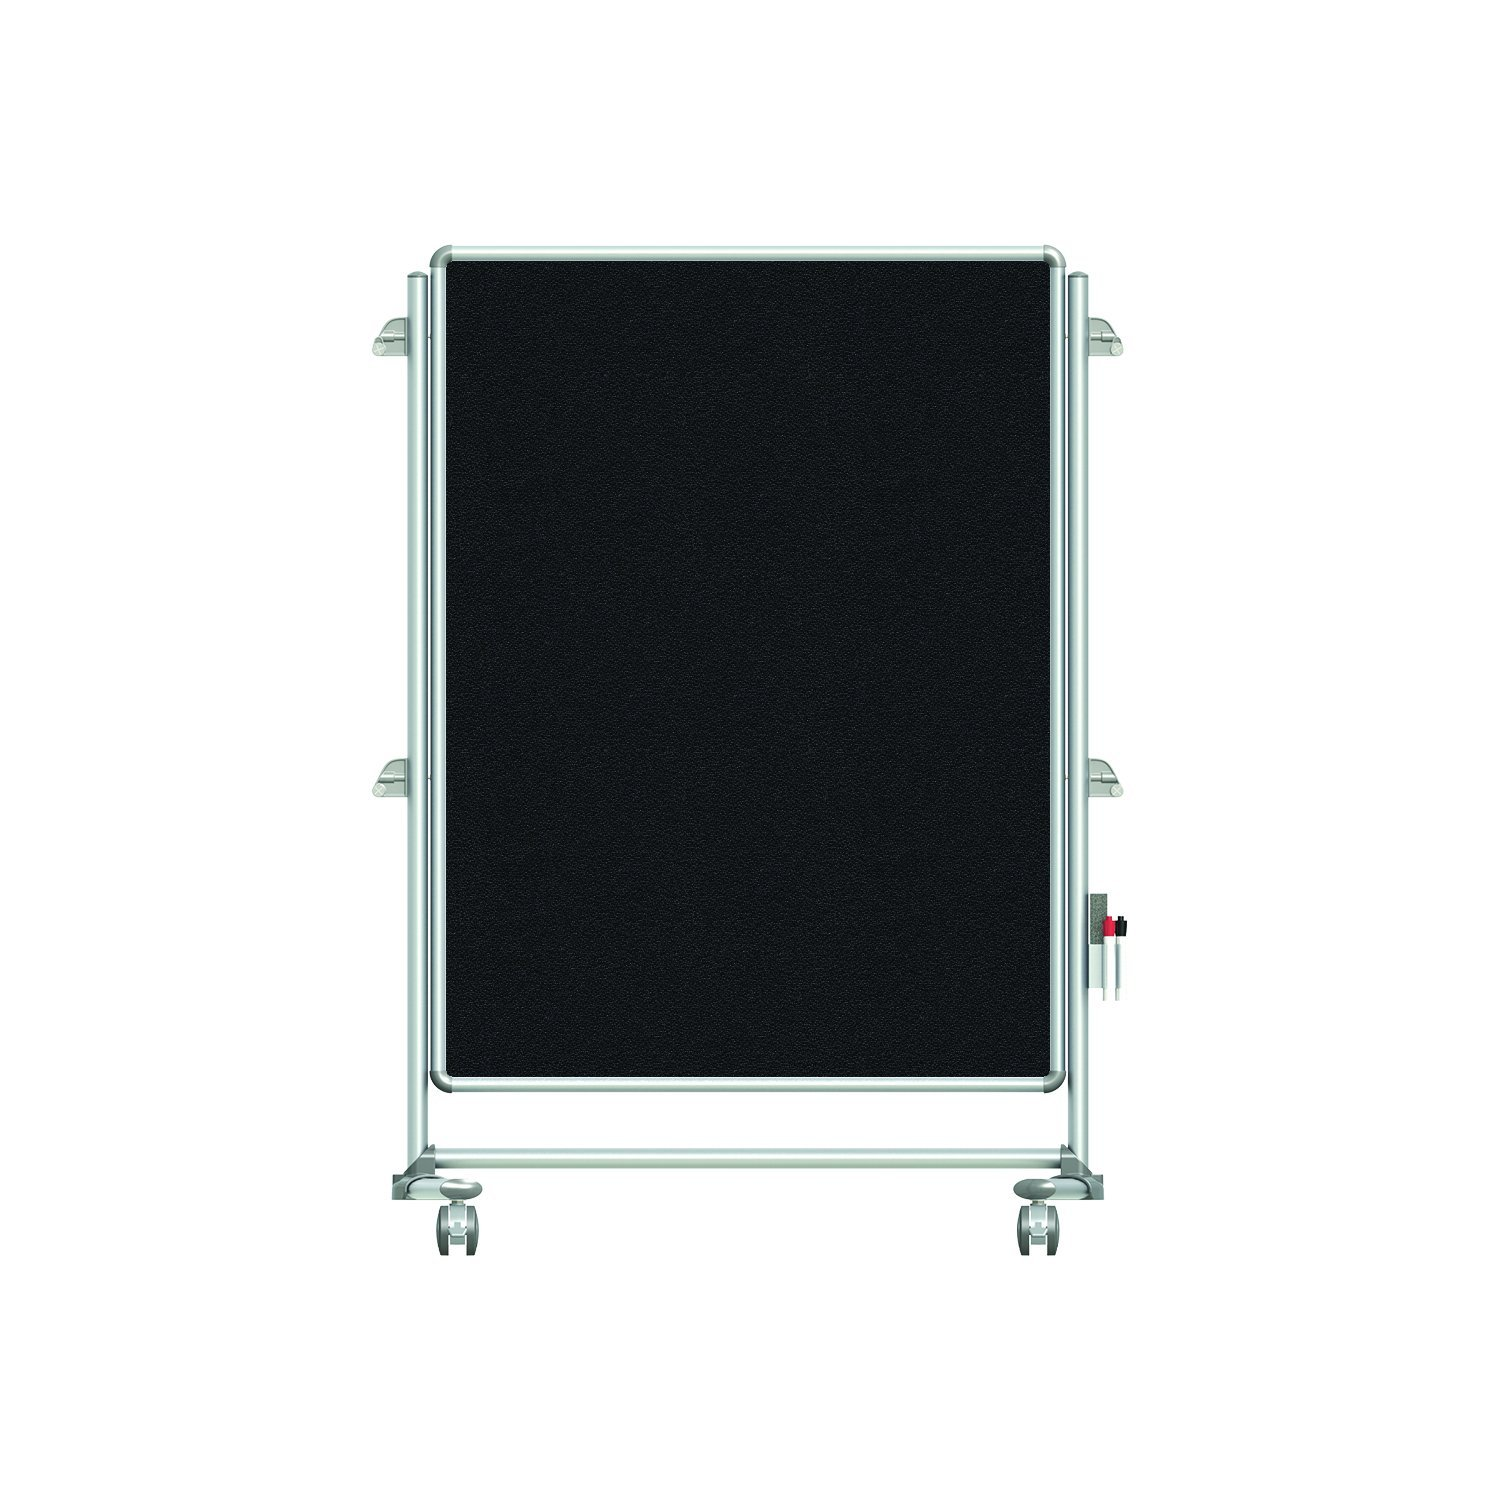 "Ghent 57-3/8"" x 40-3/8"" Nexus Jr. Partition Mobile Fabric Bulletin Board, Double-Sided, Black (NEX223FFP-95)"